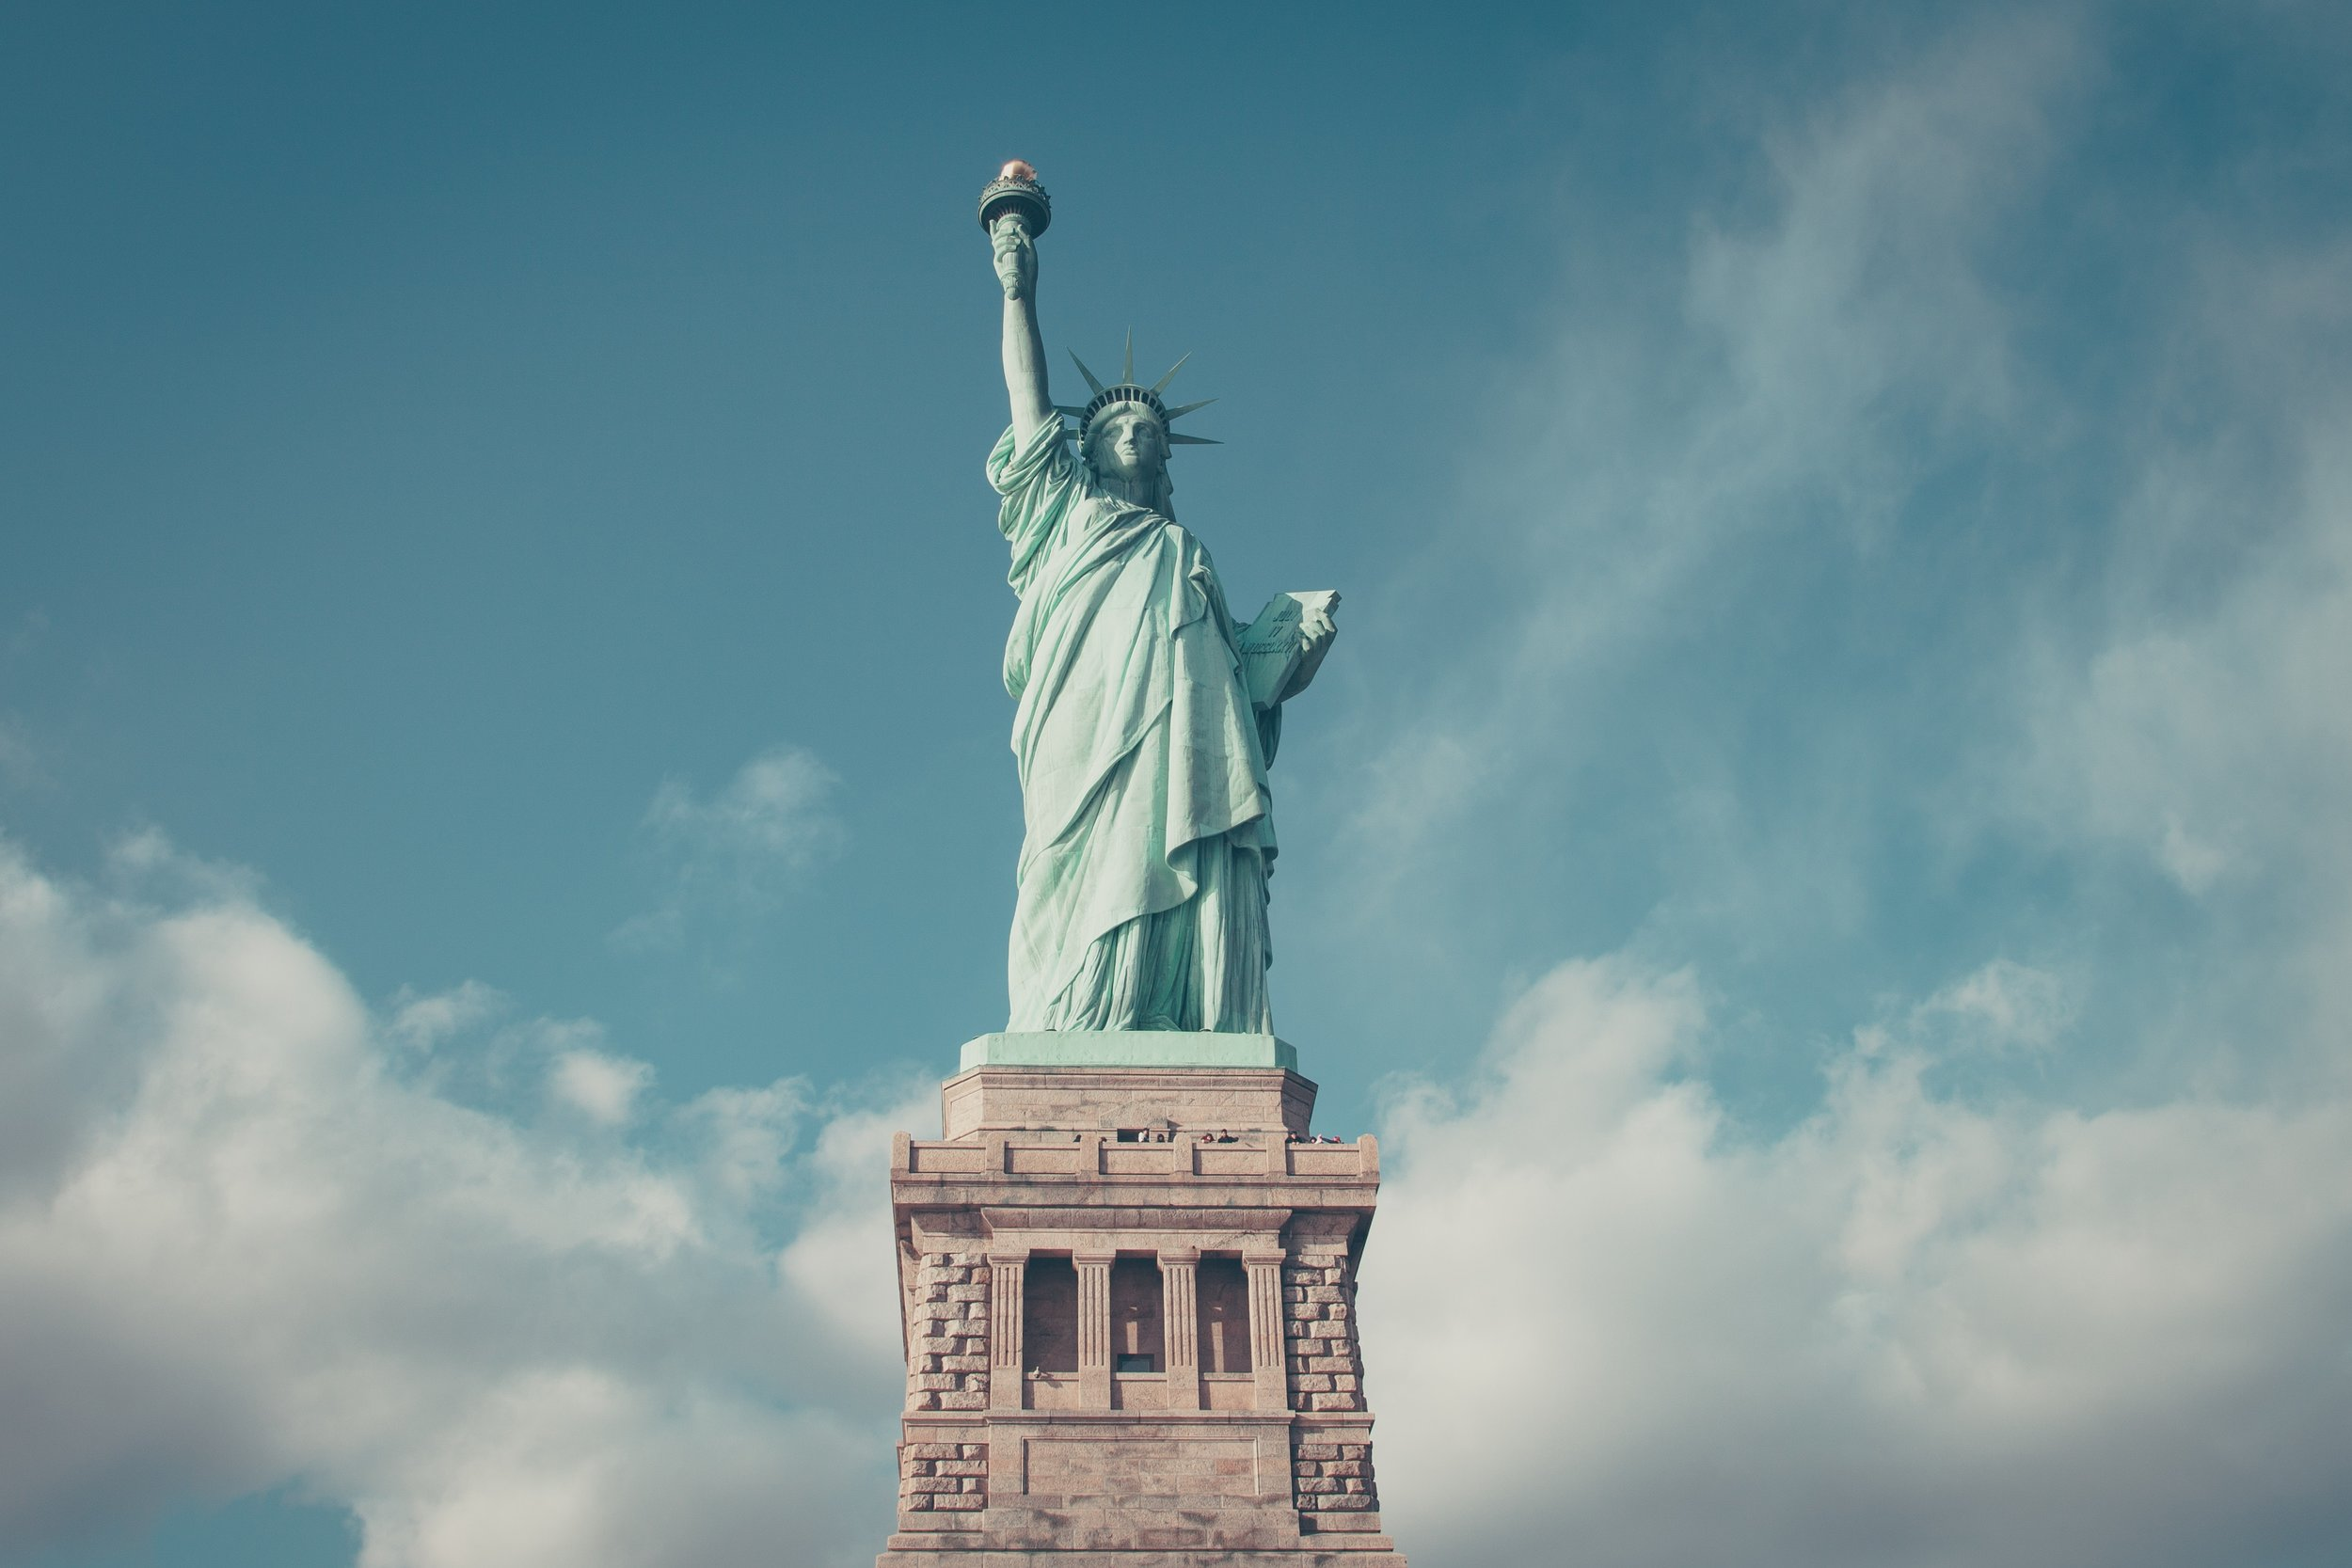 The Statue of Liberty stands proud as a veritable symbol of New York City,photo by  Anthony DELANOIX on  Unsplash